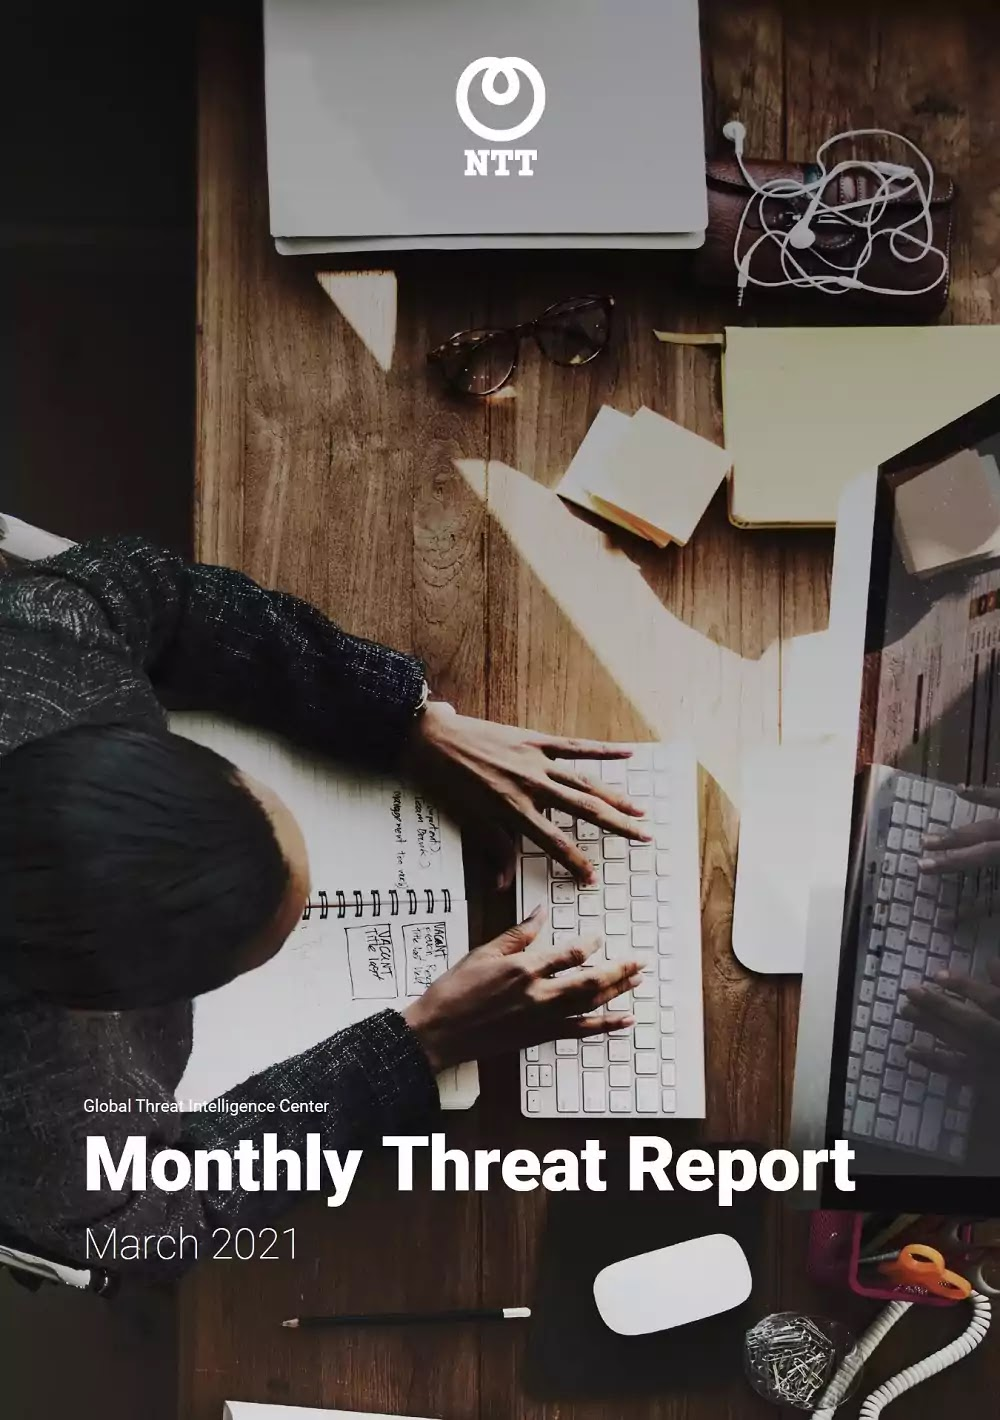 NTT GTIC March 2021 Monthly Threat Report